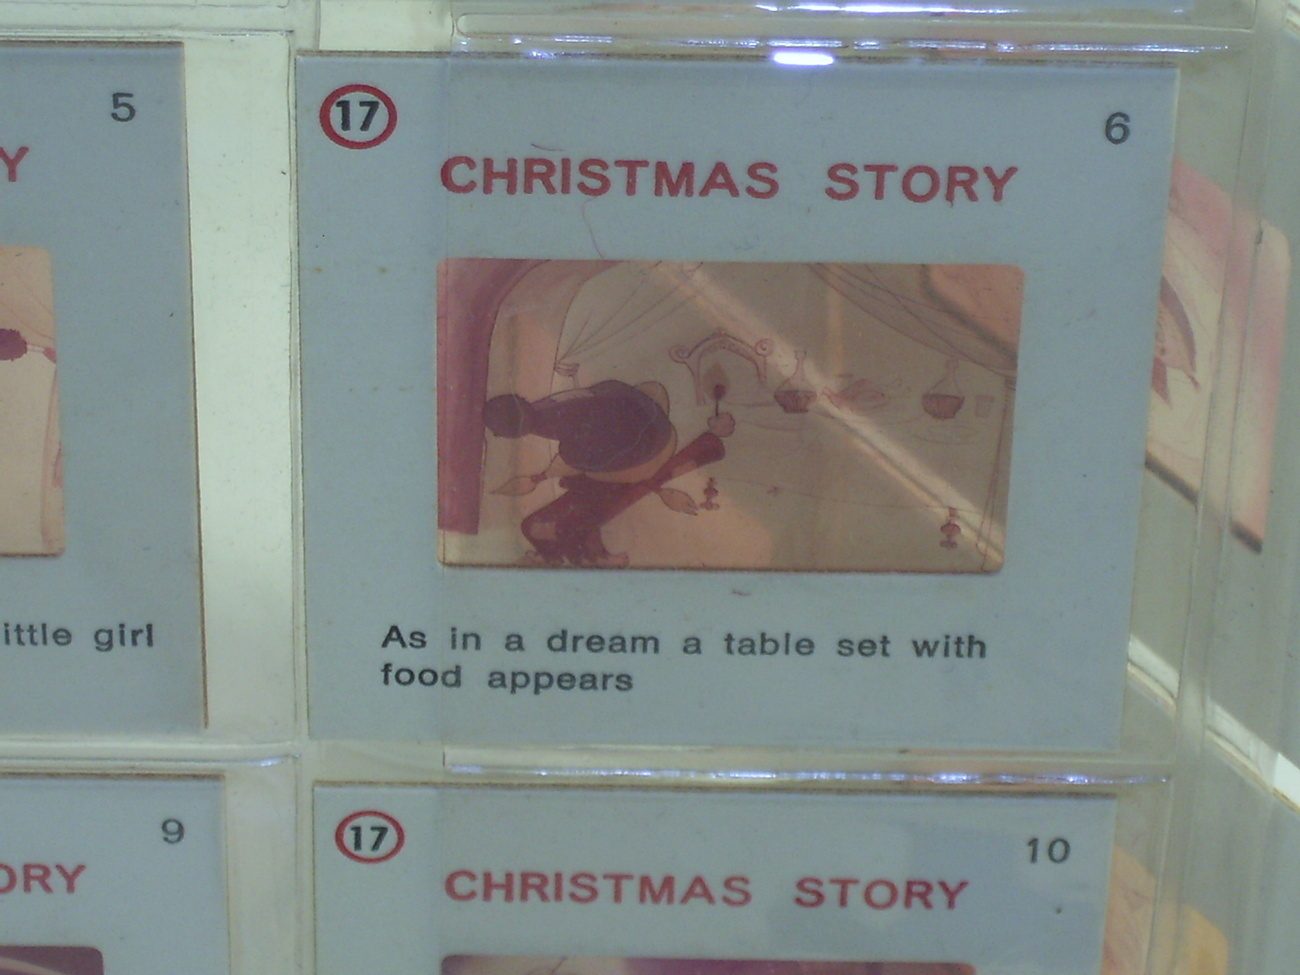 Rare Vintage Slides of The Little Match Girl Christmas Story